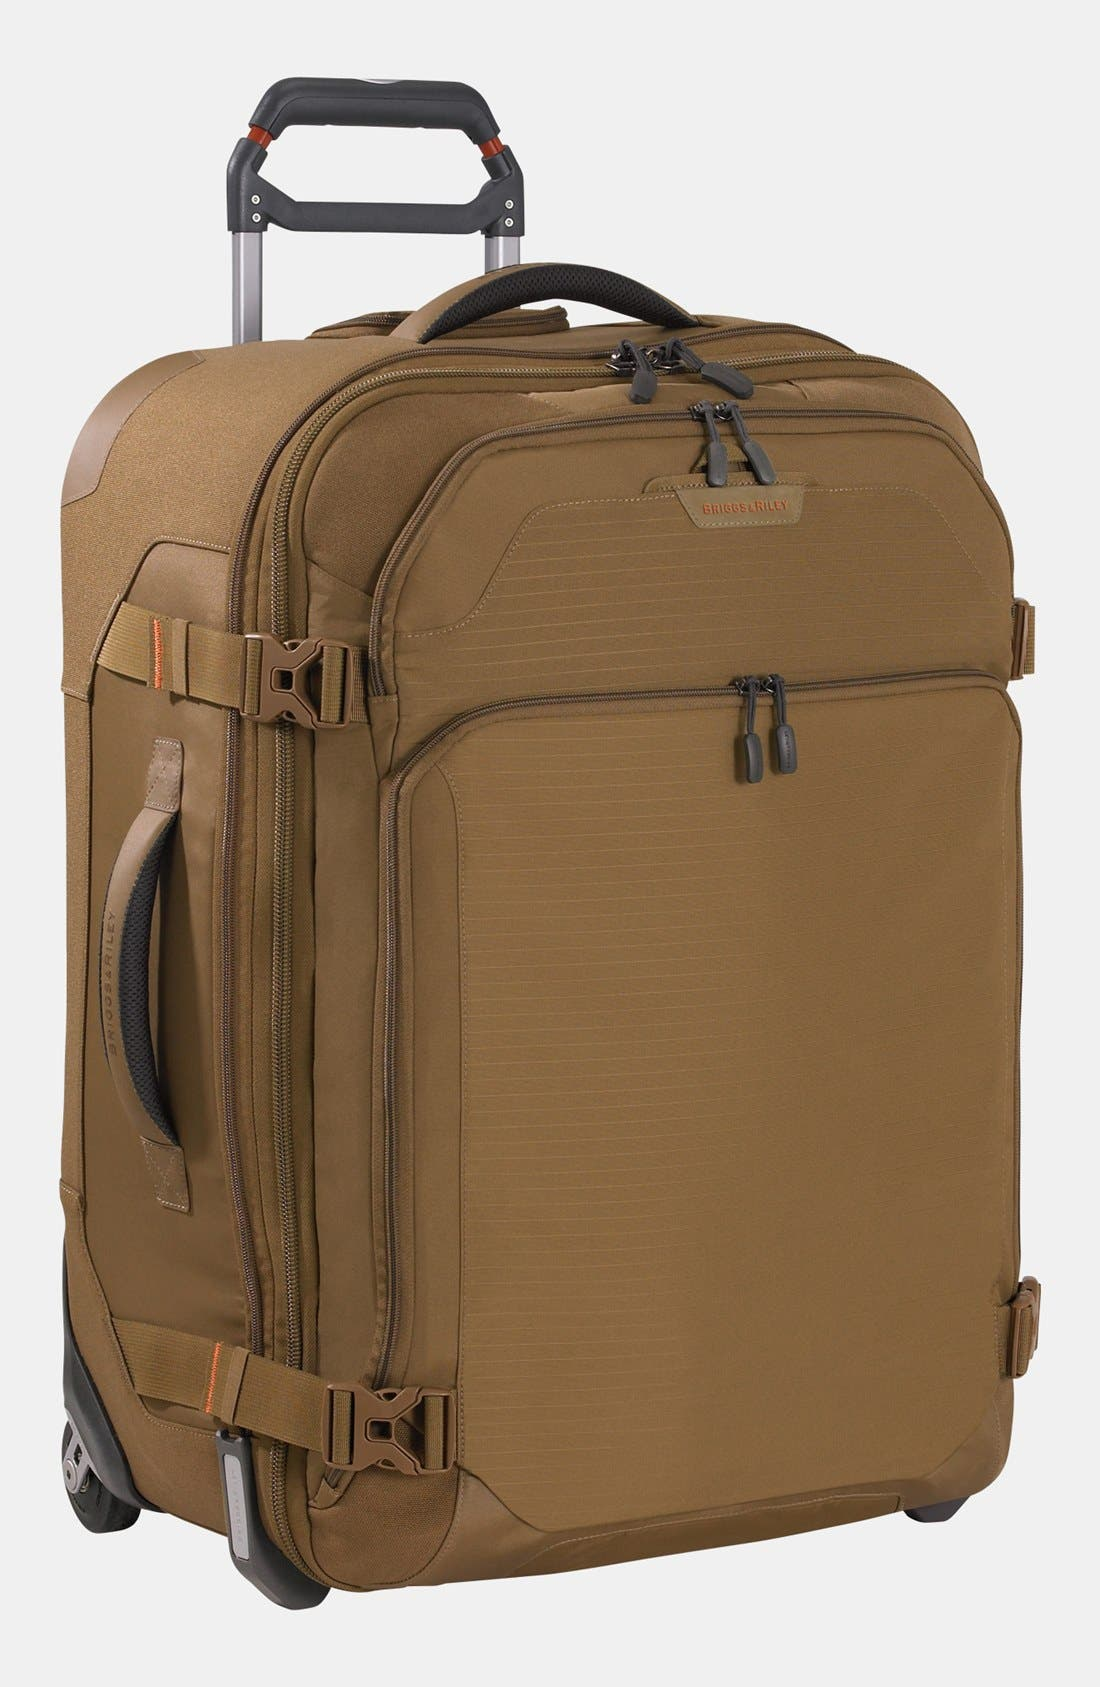 Main Image - Briggs & Riley 'Explore' Upright Rolling Suitcase (25 Inch)